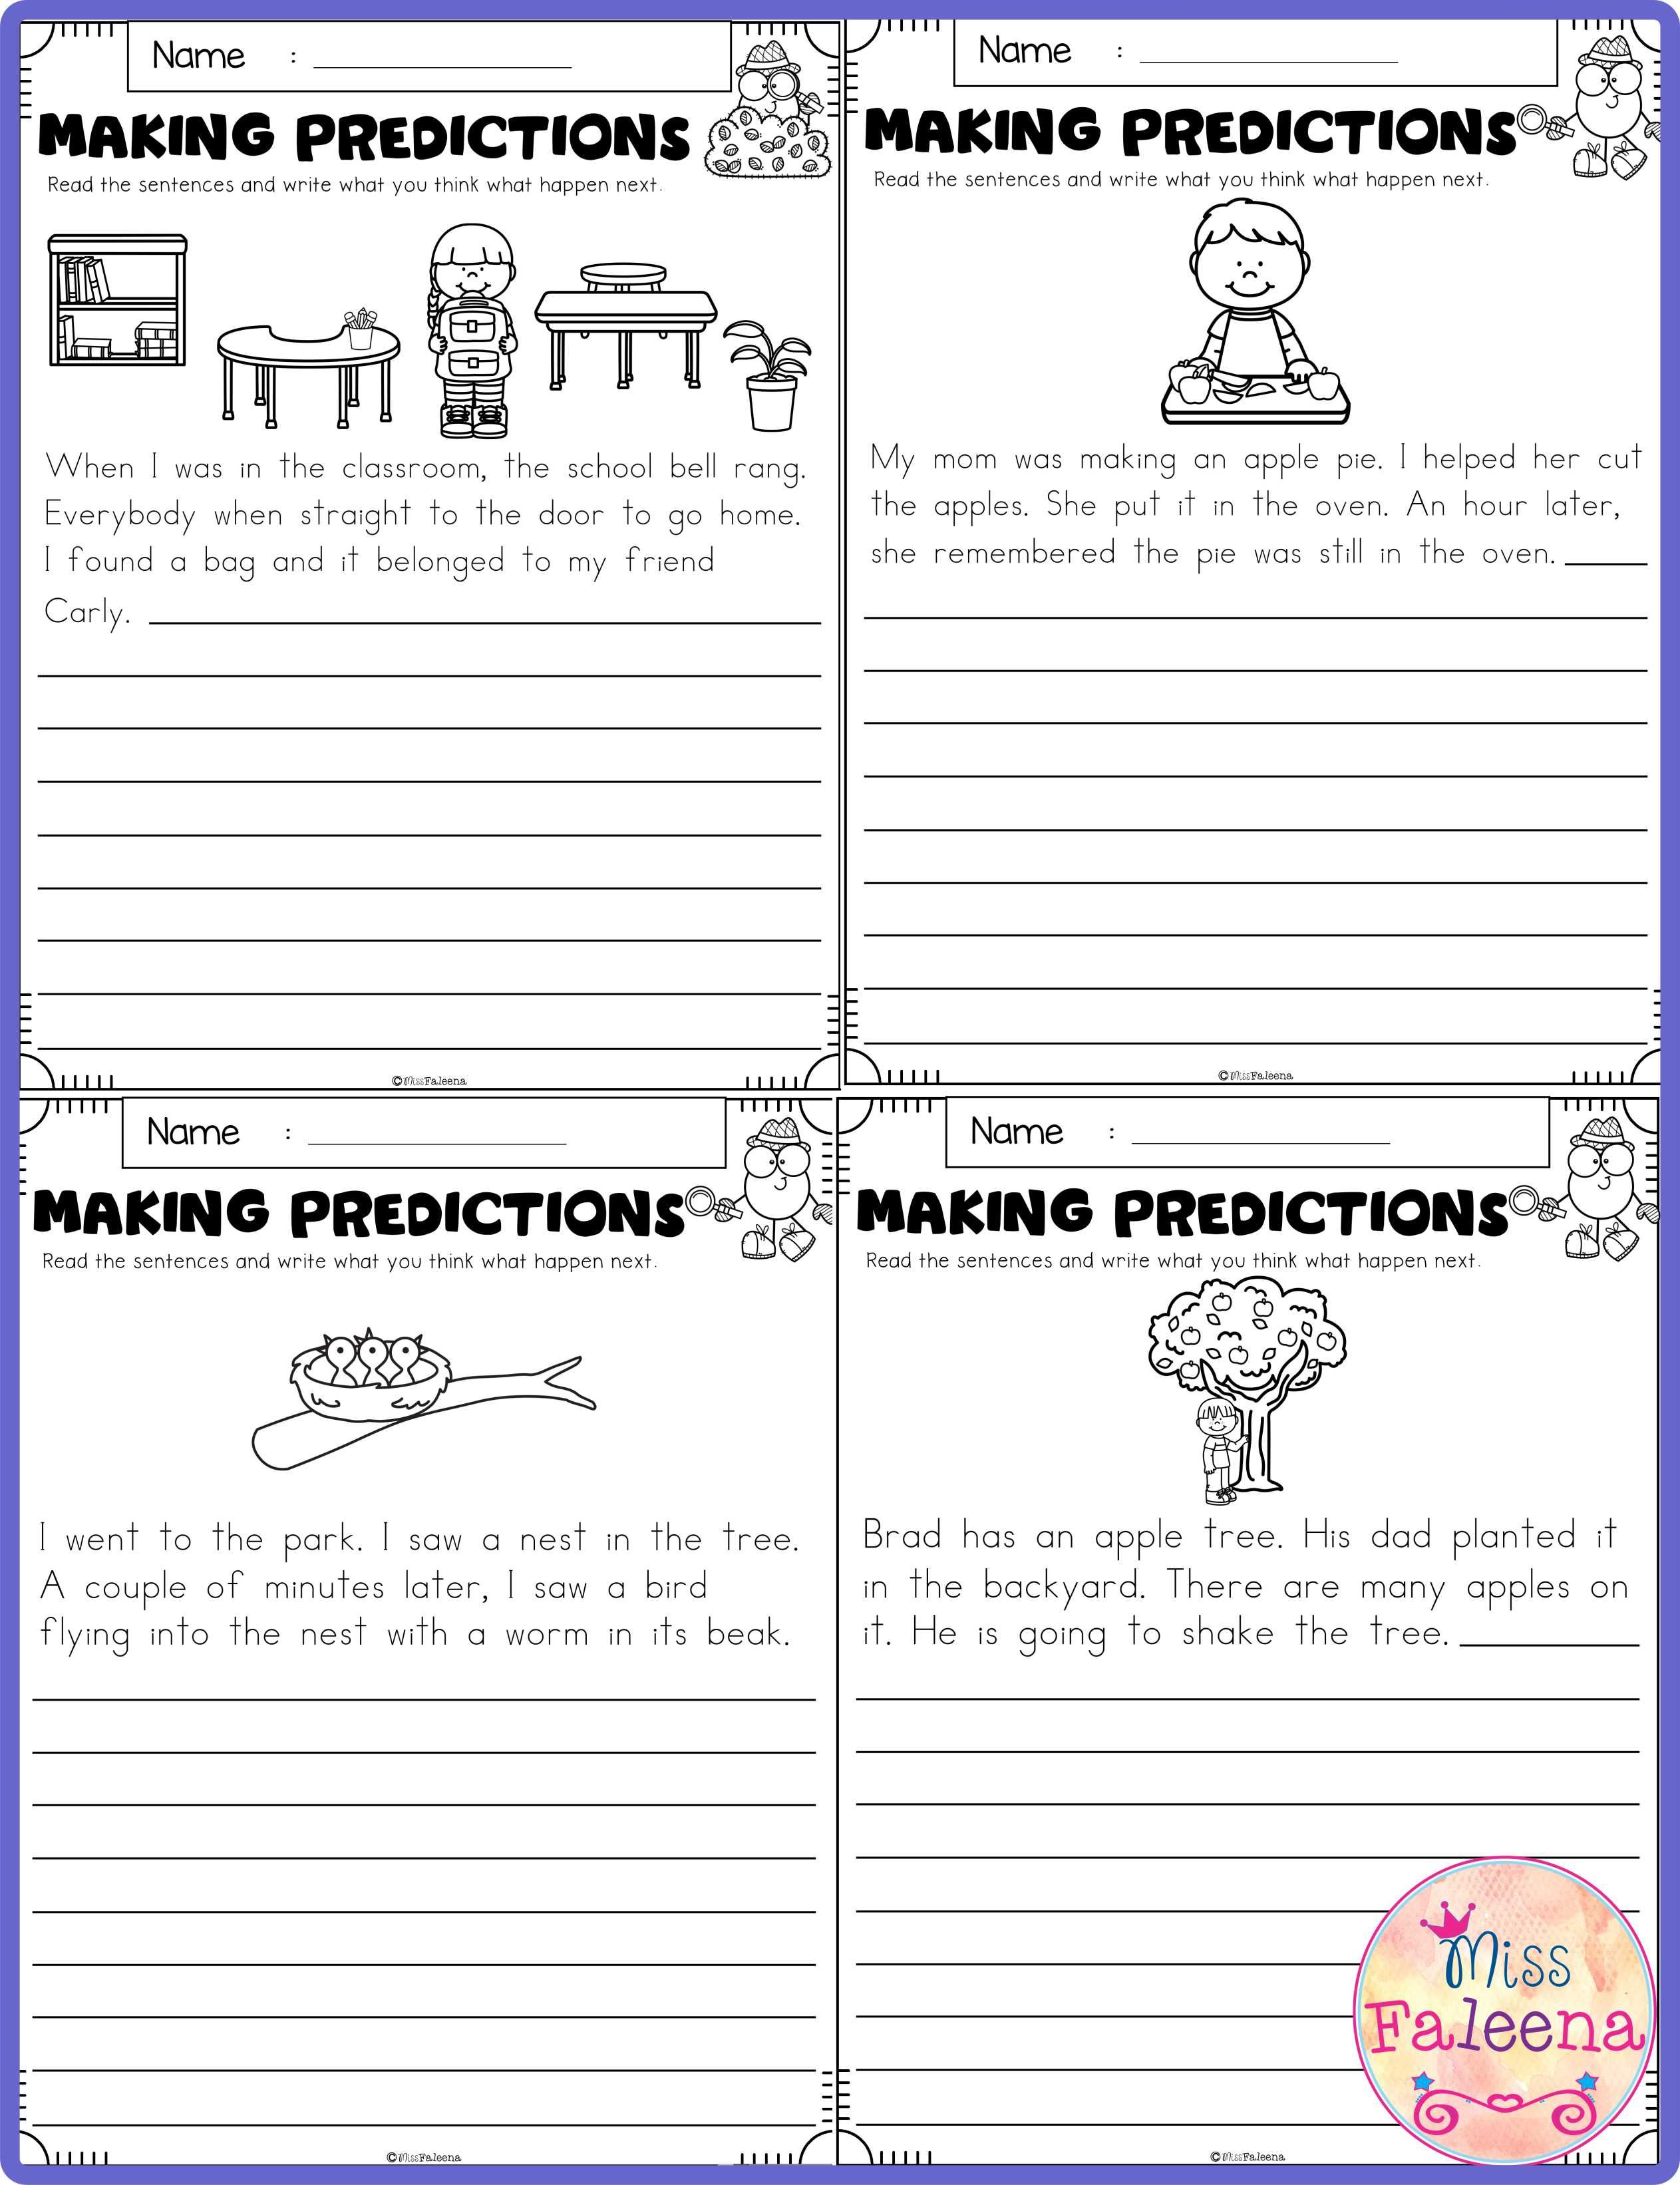 September Making Predictions Contains With Total 30 Pages Of Making Prediction Worksheets This Making Predictions 2nd Grade Worksheets First Grade Worksheets